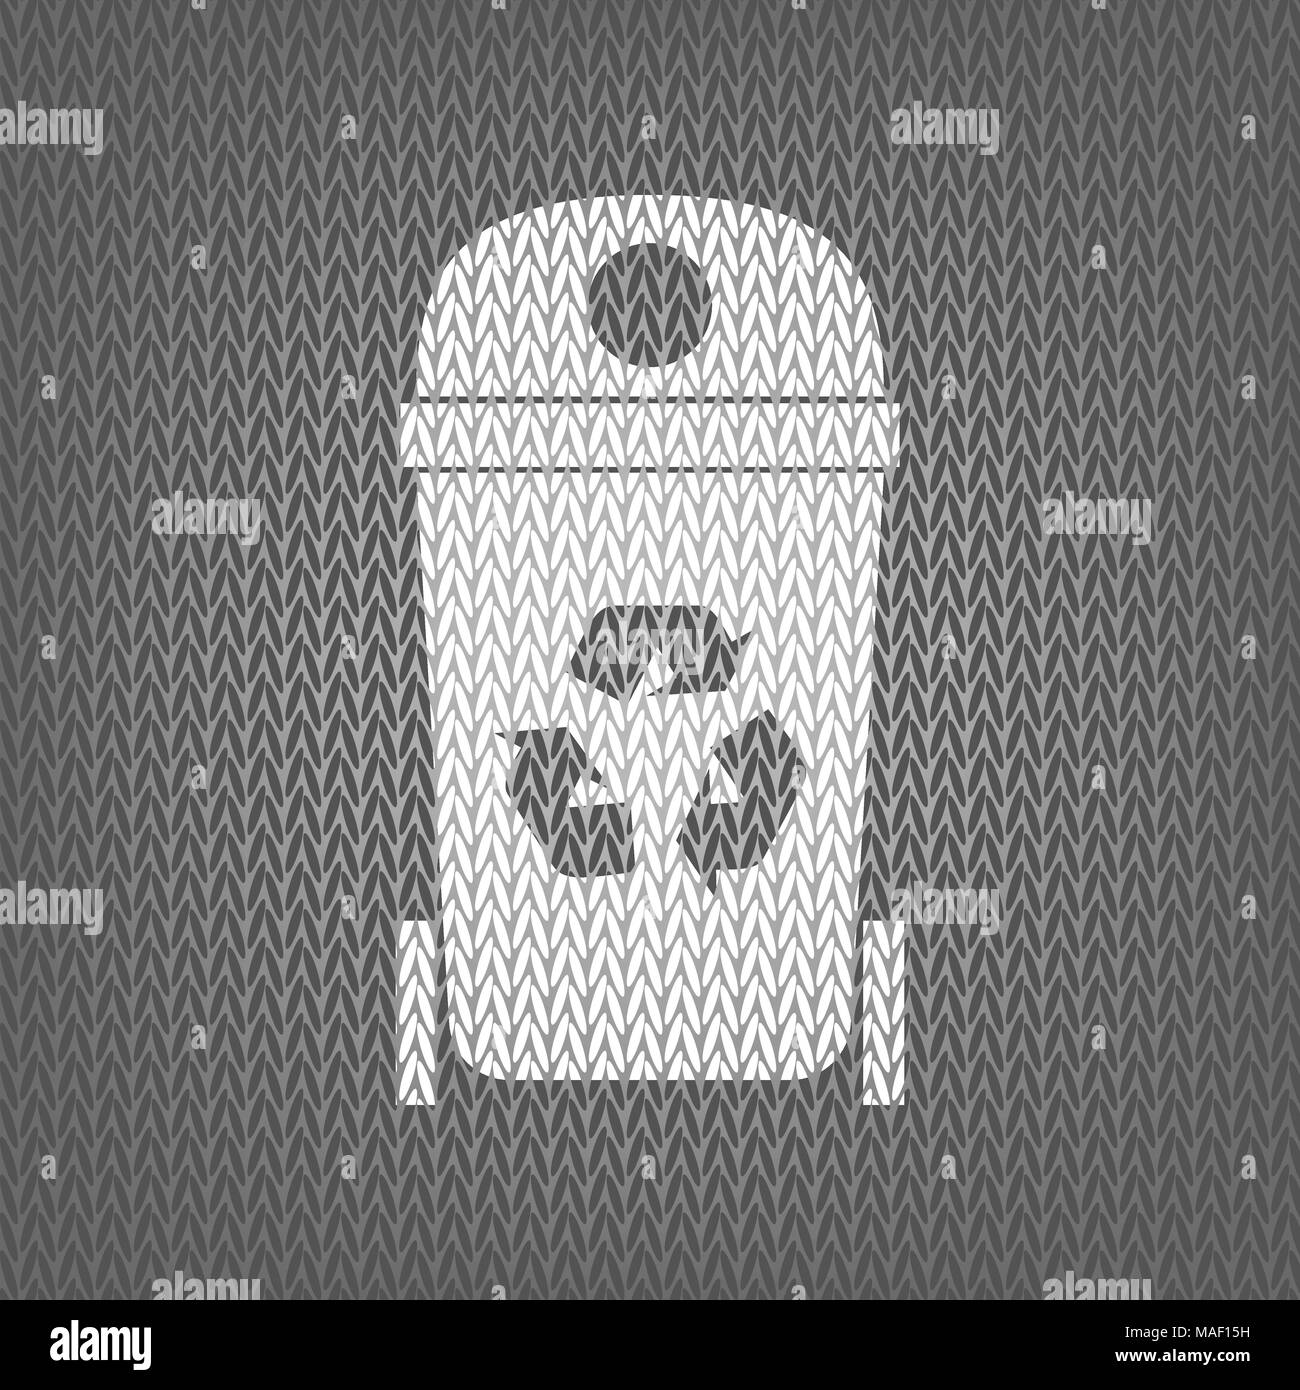 Trashcan sign illustration. Vector. White knitted icon on gray knitted background. Isolated. - Stock Vector